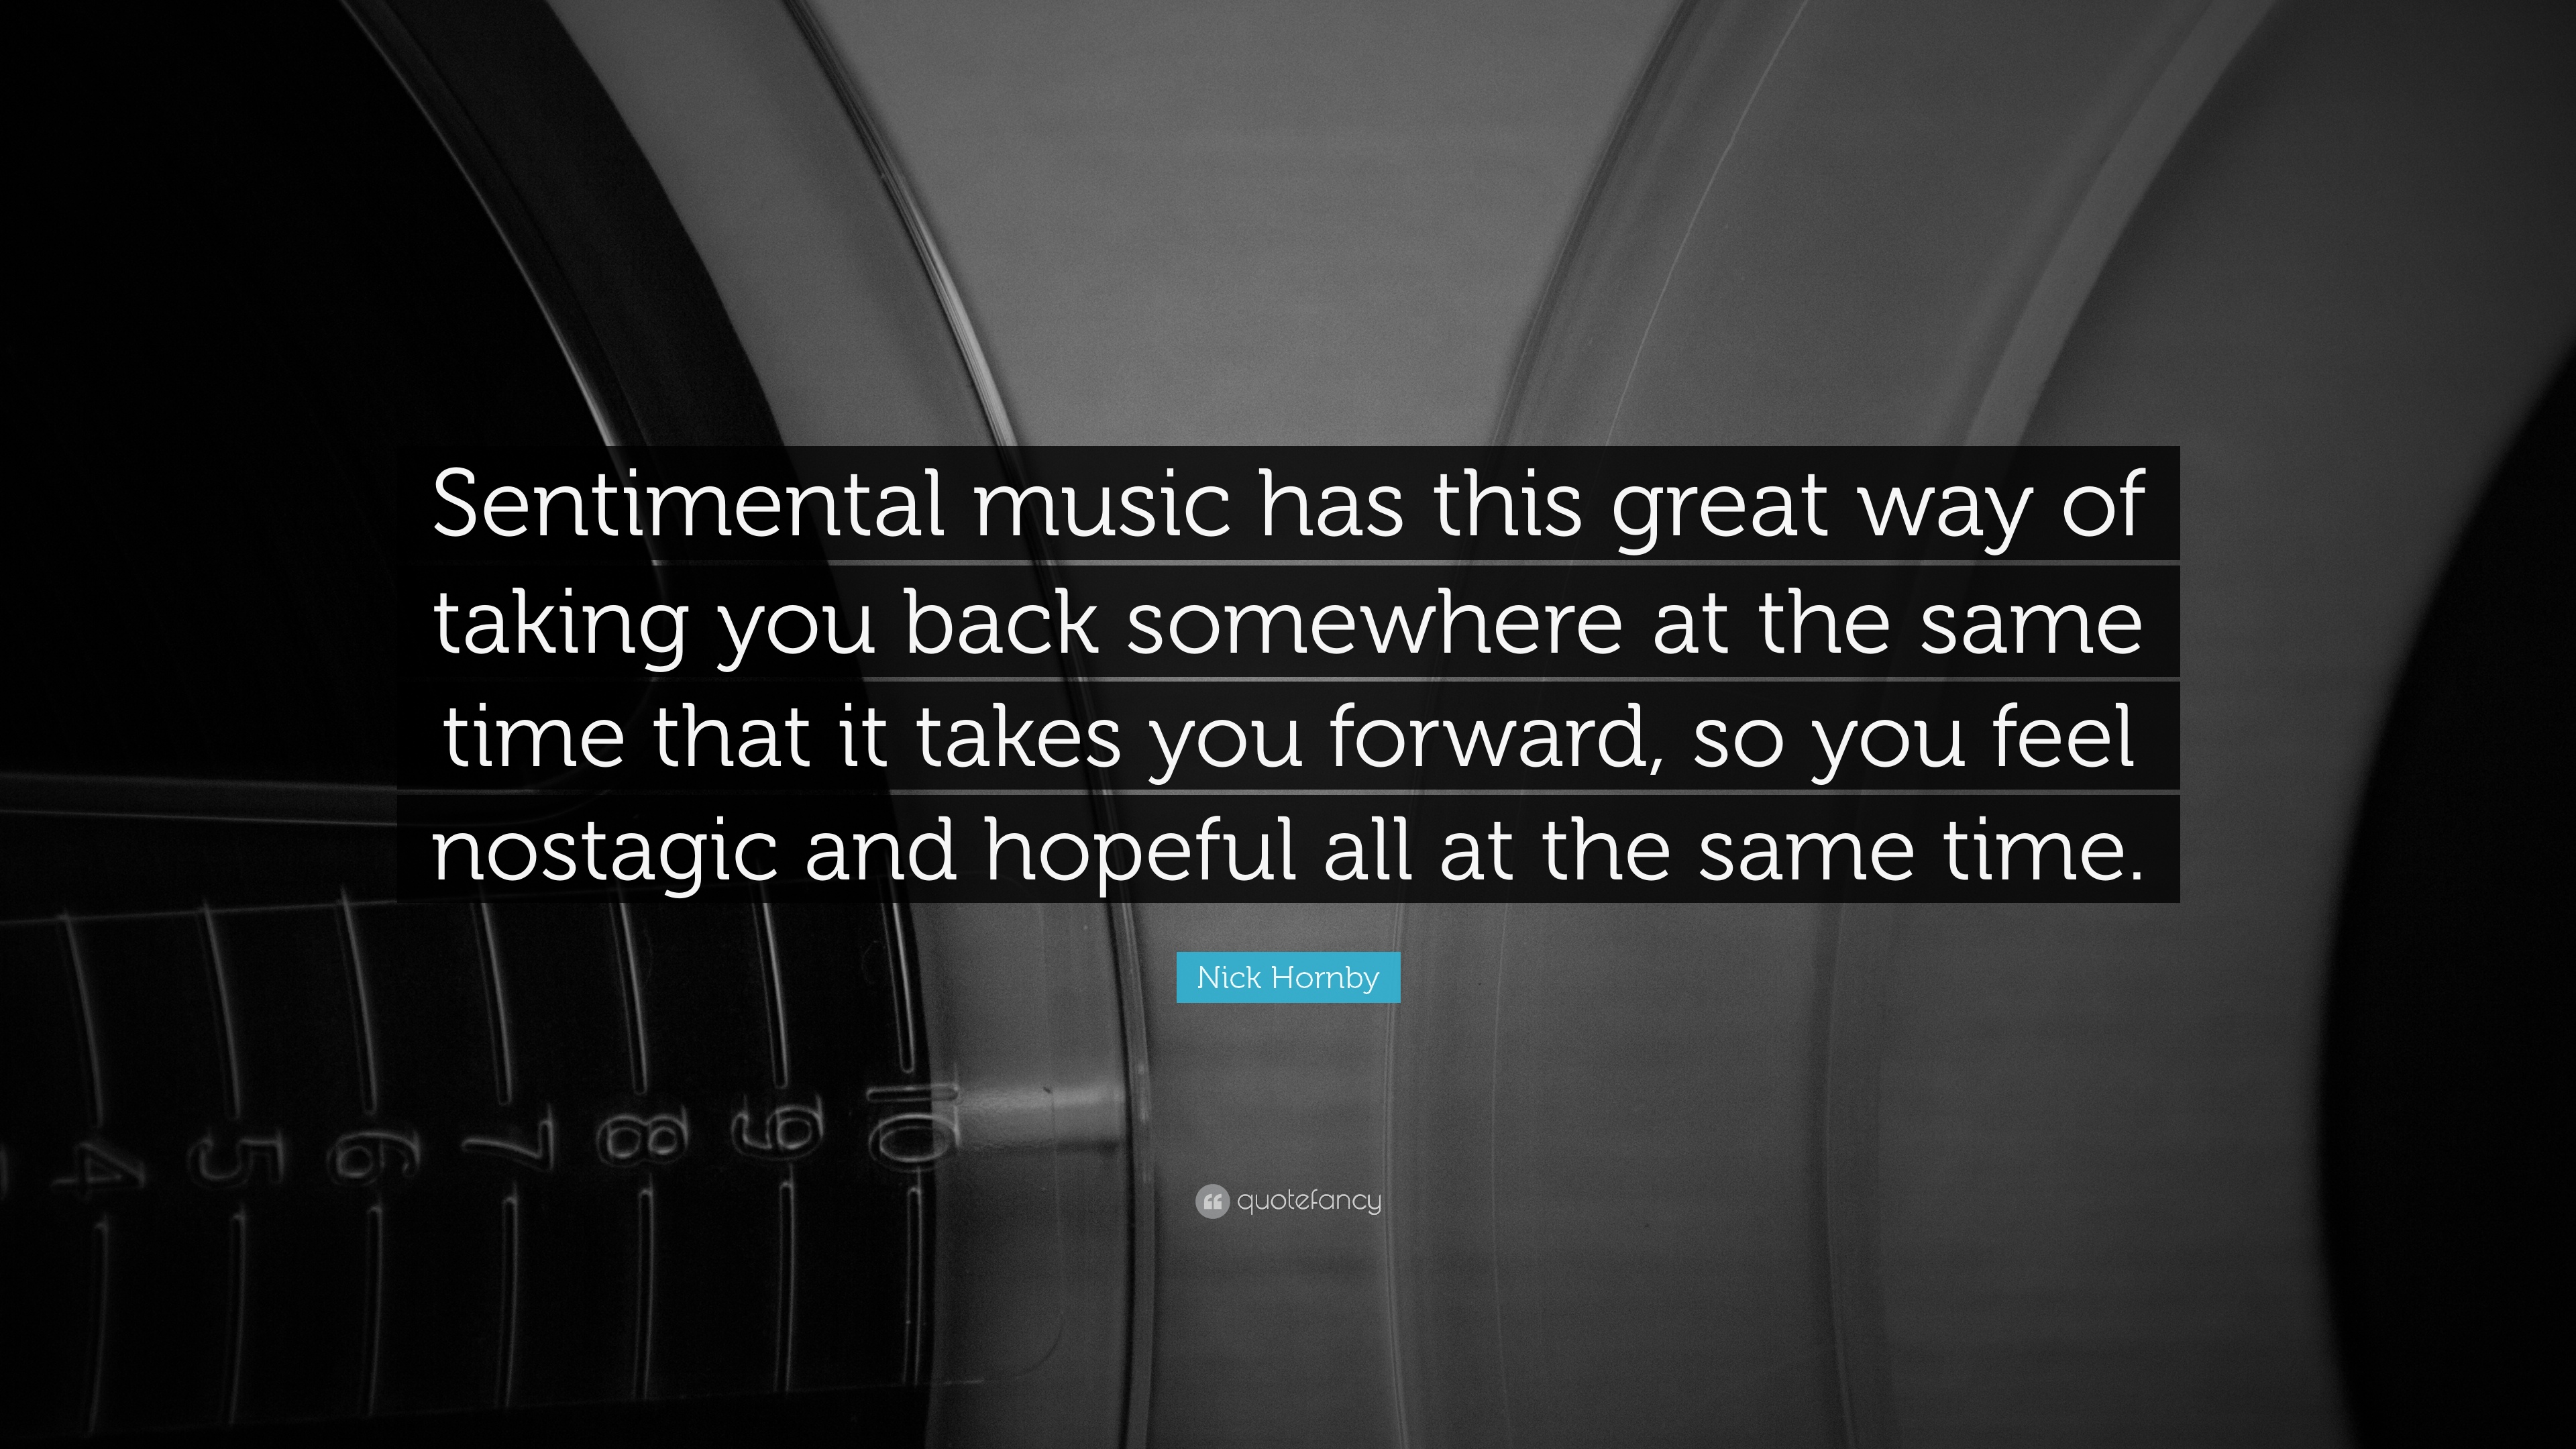 Music quotes sentimental music has this great way of taking you back somewhere at